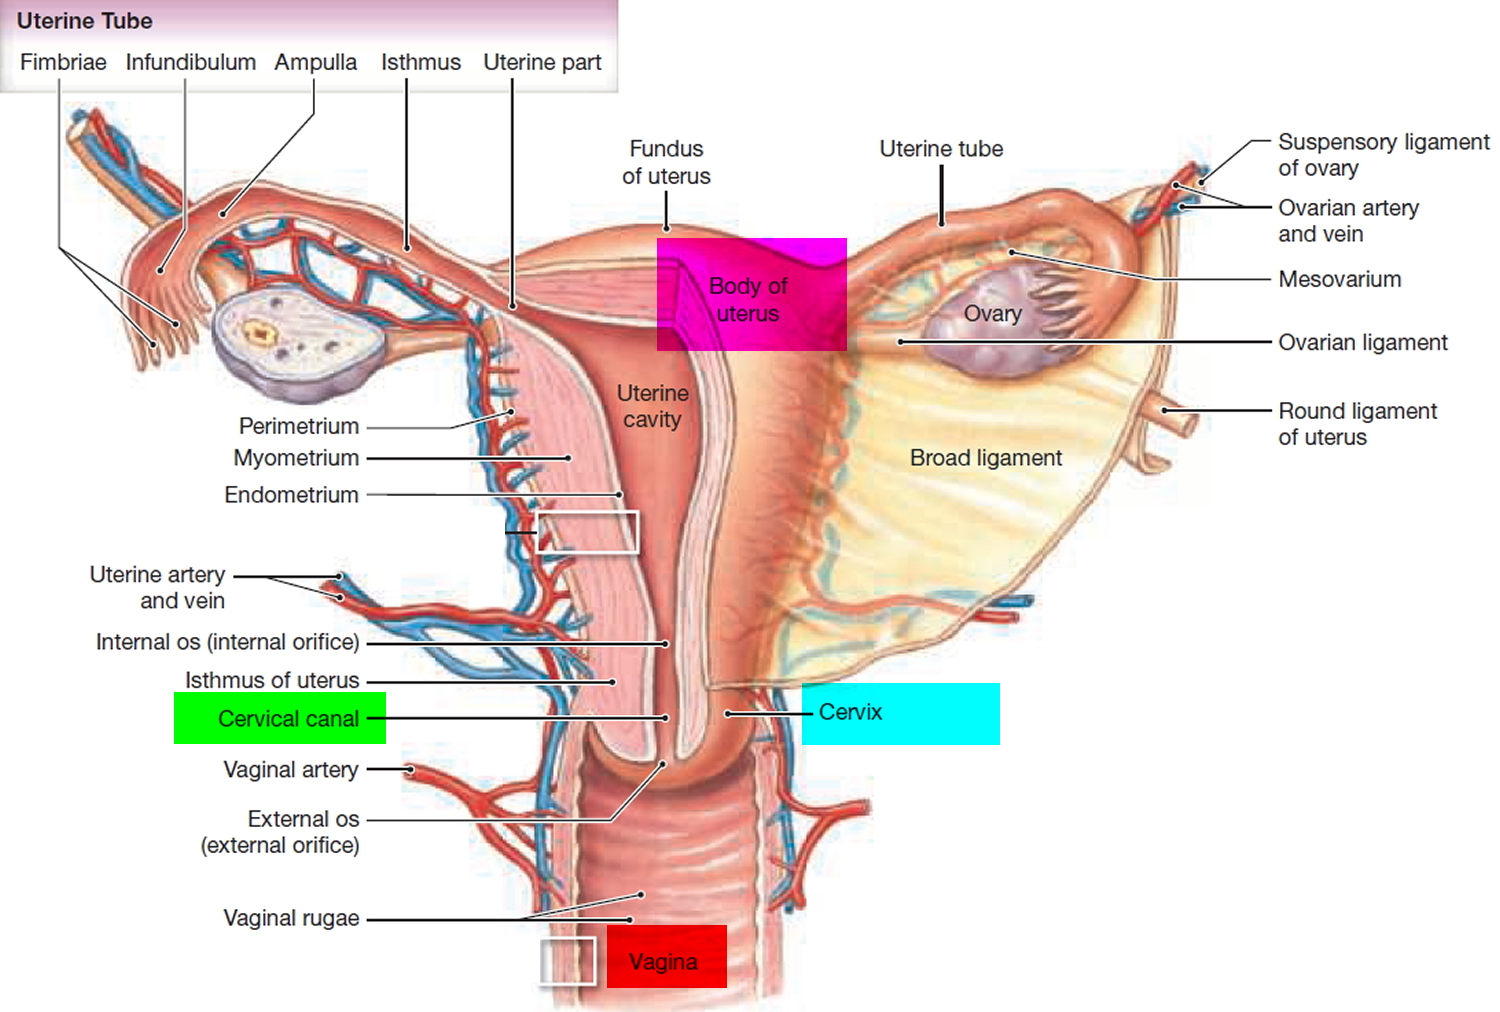 hight resolution of uterine tube diagram schematic diagramsfallopian tube function pregnancy blocked fallopian tube digestive tube diagram uterine tube